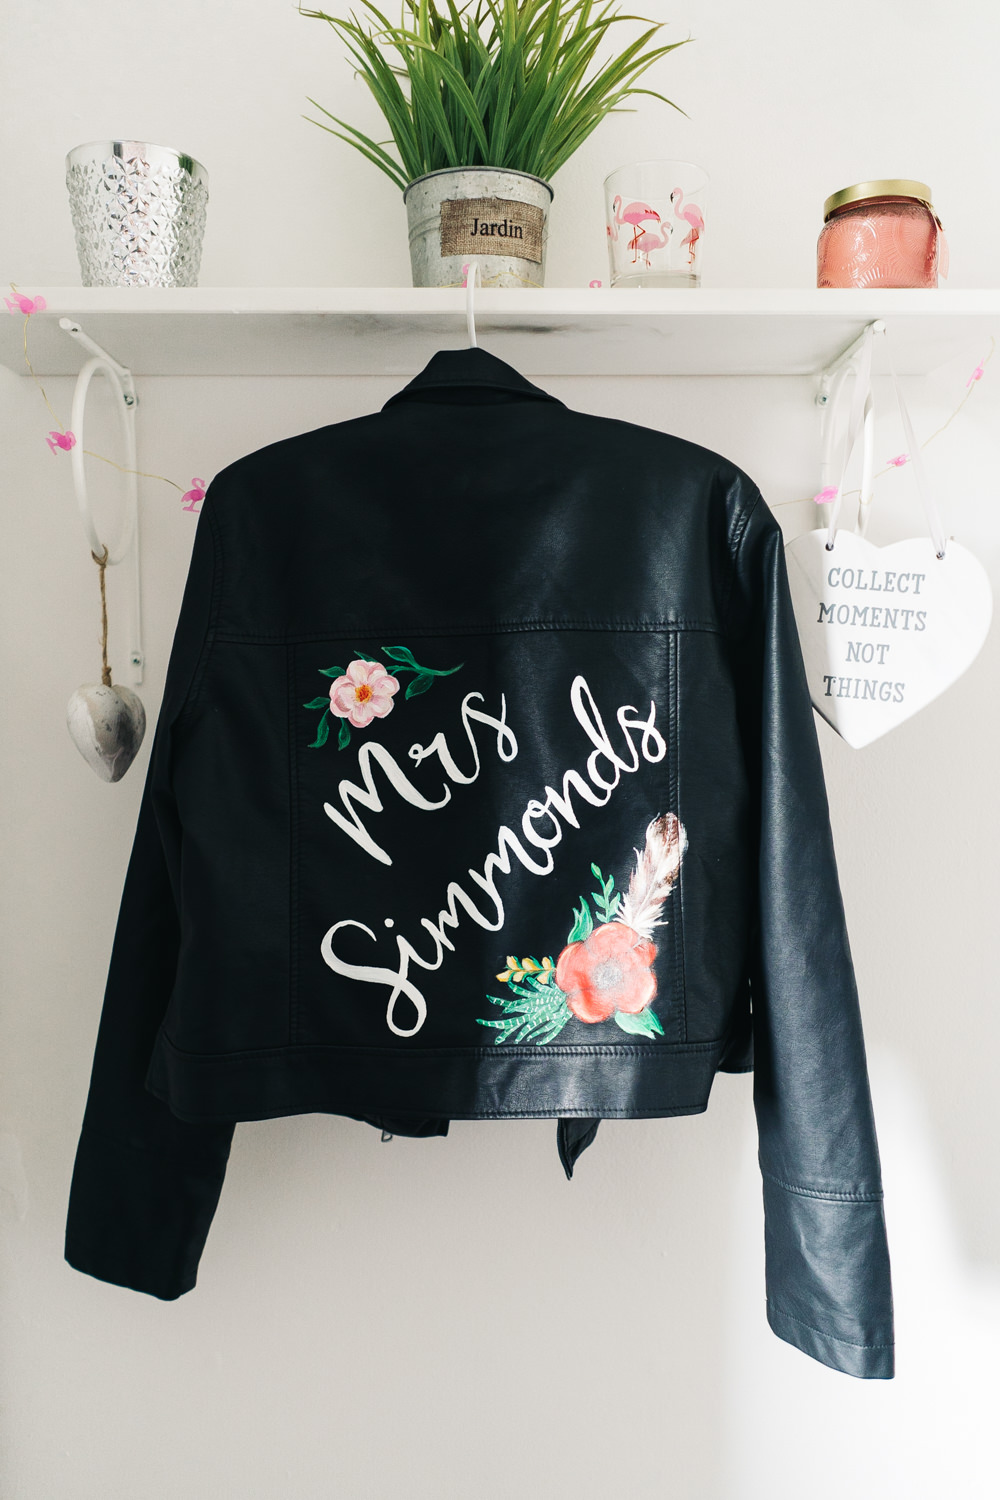 Bride Bridal Jacket Painted Hammer and Pincers Wedding Sally T Photography